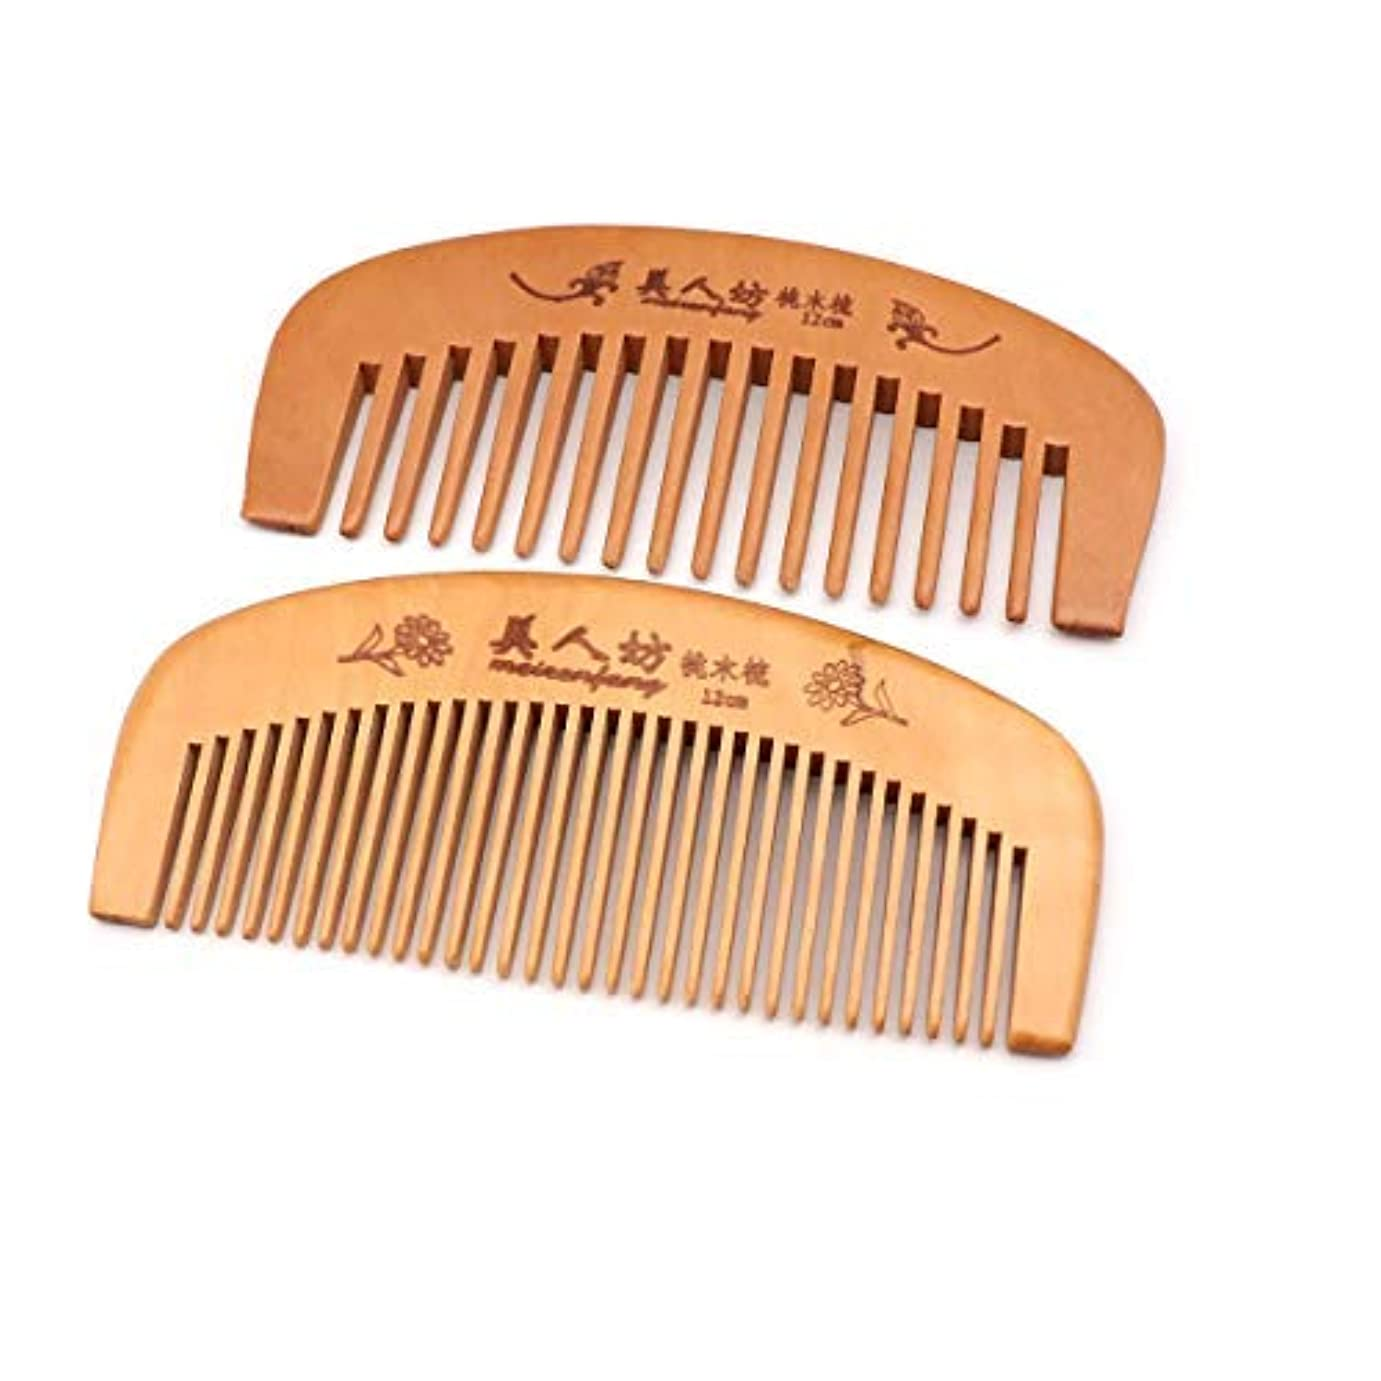 できない処理自然公園Handmade Wooden Hair Comb for Curly Wide Toothed Wooden Comb, anti-Static and Barrier-free Hand Brushing Beard...